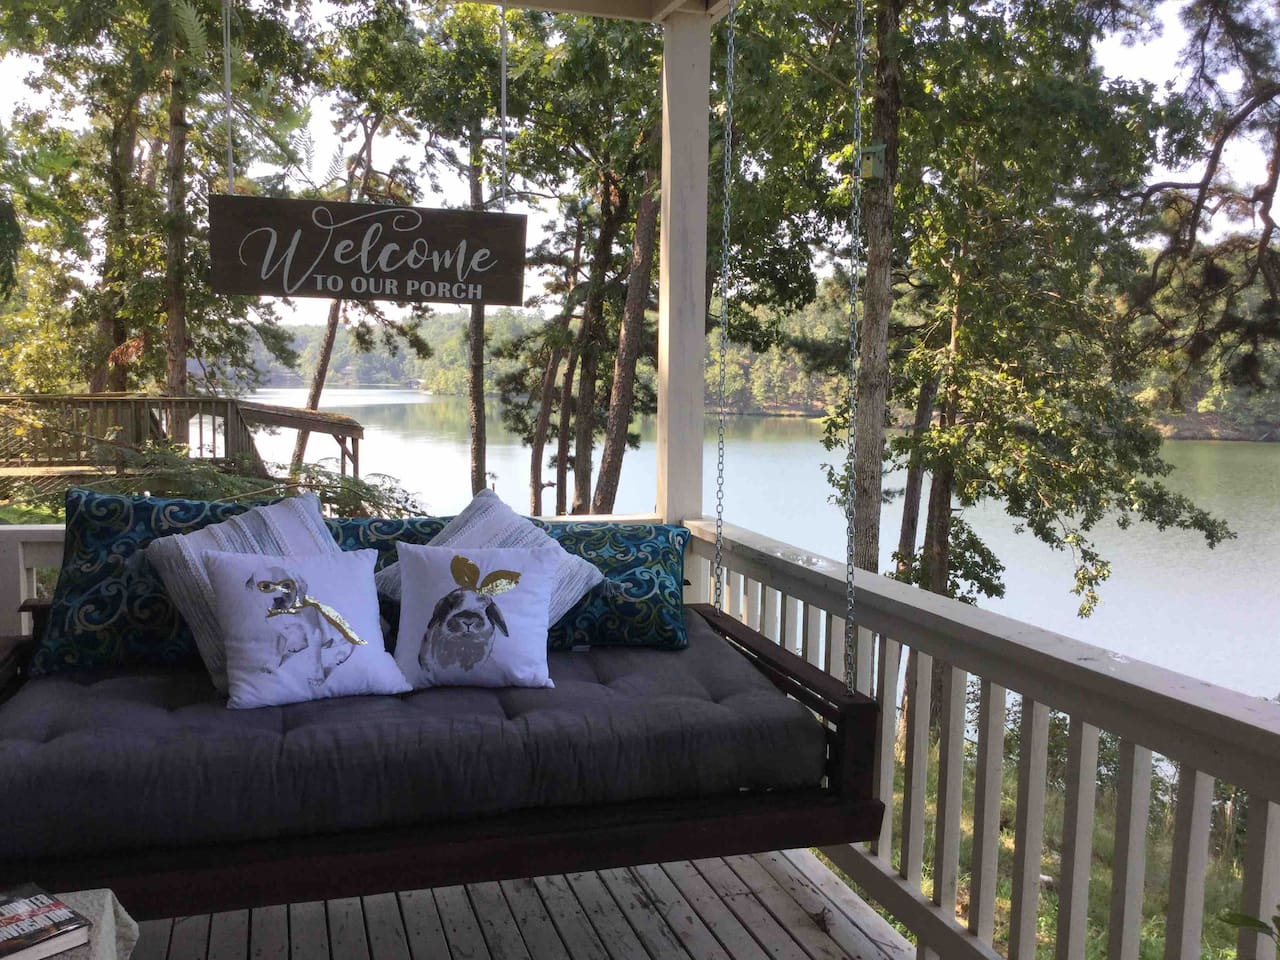 Welcome to Charming Porch Room on Lake Norrell B&B.  We know you will love your own daybed swing on the private porch.